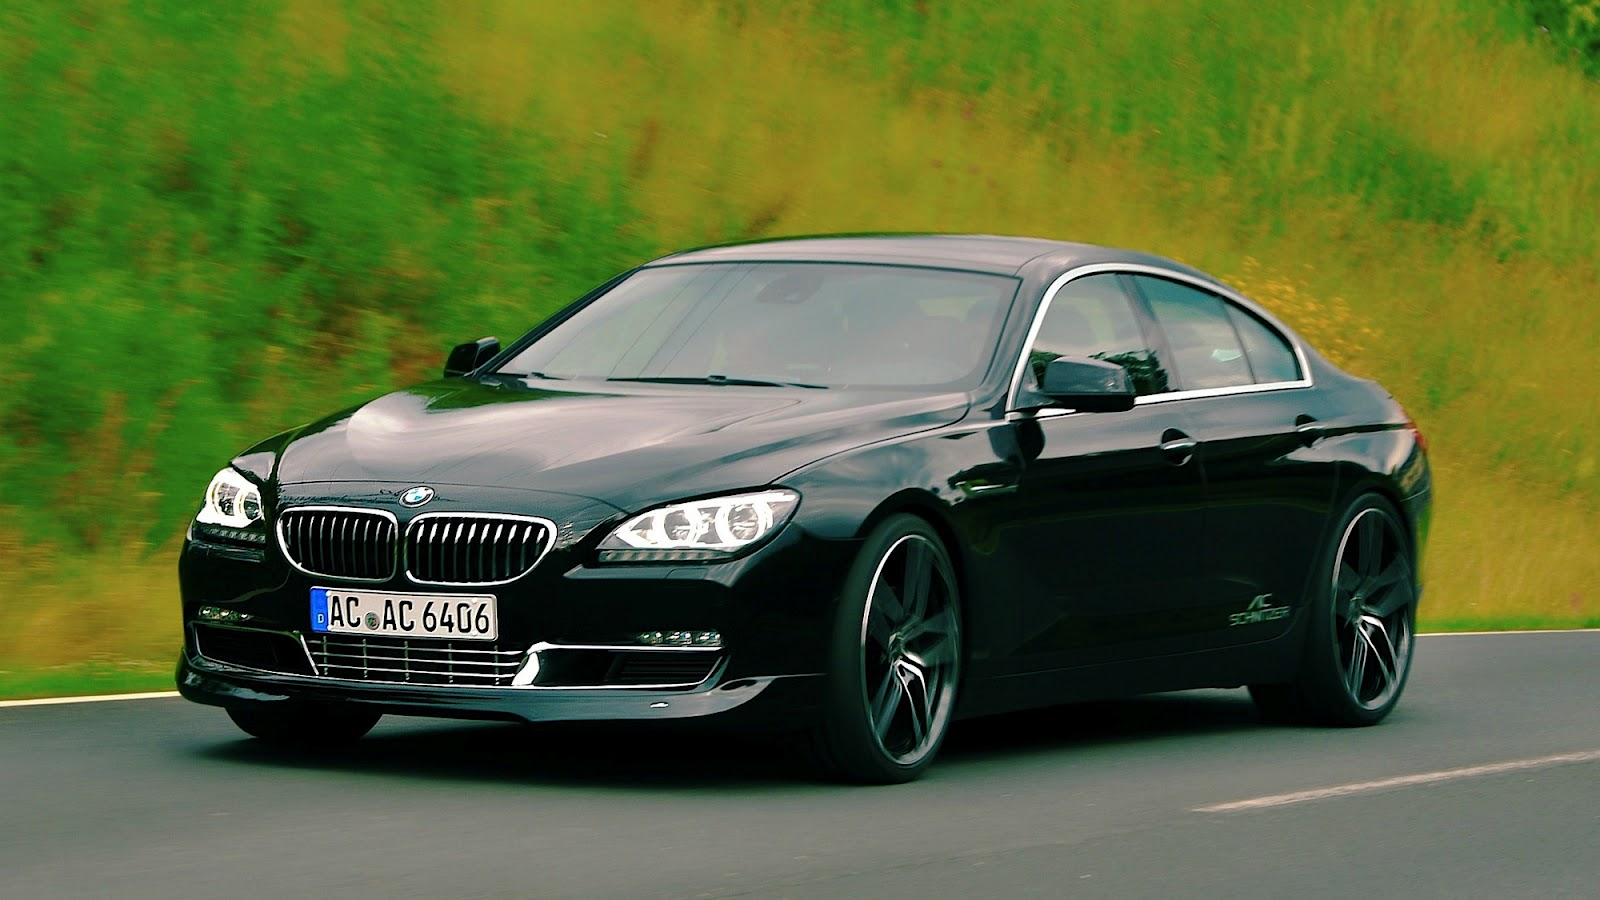 2012 Ac Schnitzer Bmw 640d Gran Coupe On 21 Quot 360 Cv Carwp